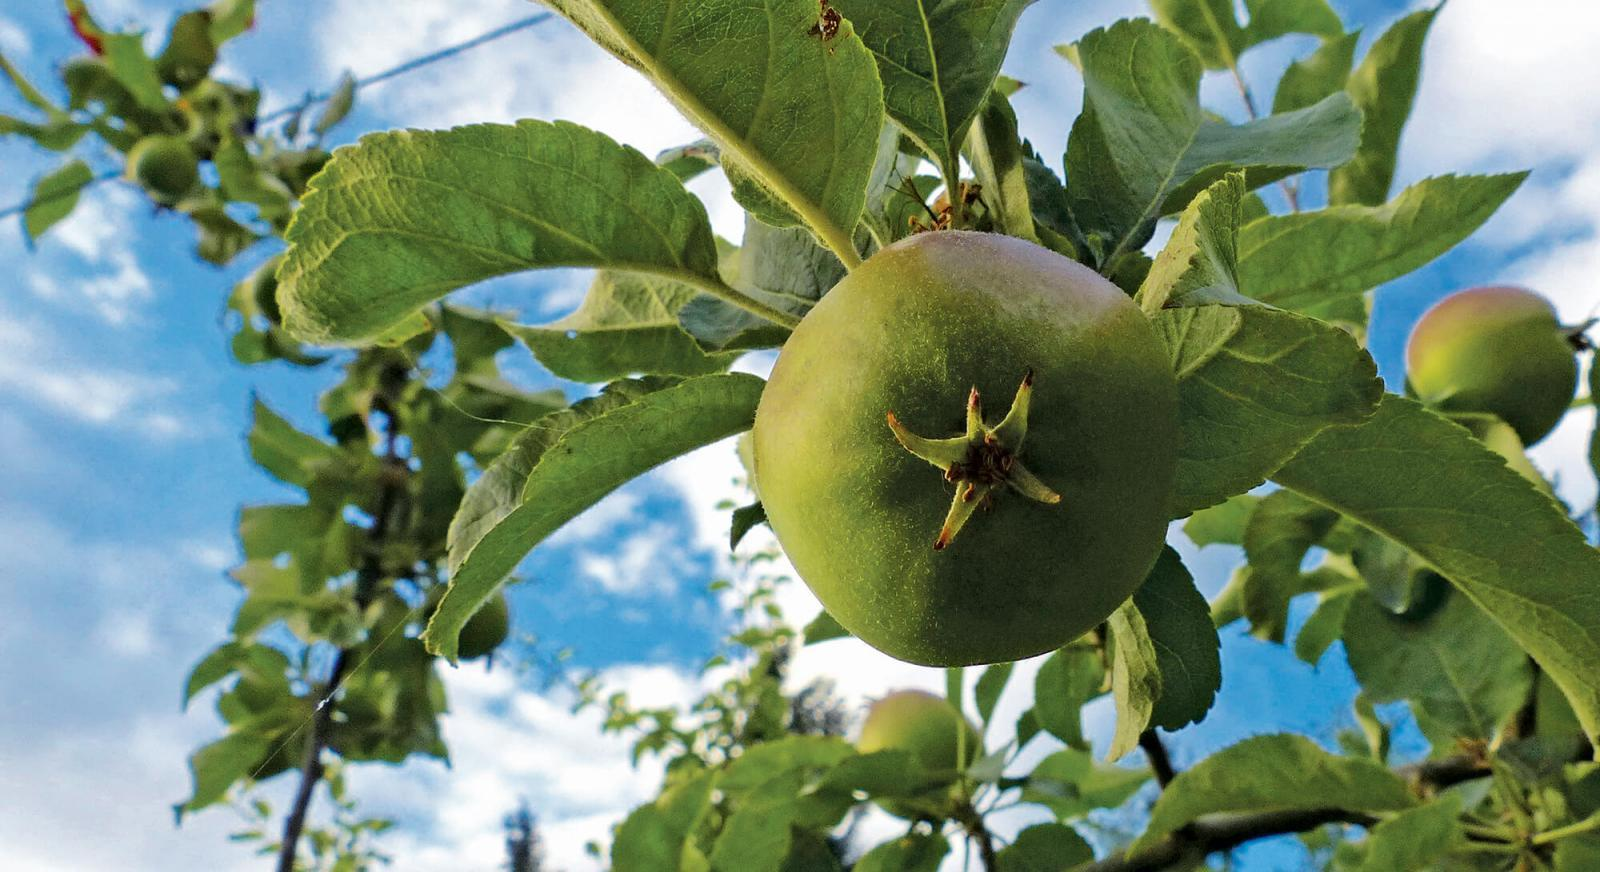 The easier way to integrate fruit trees into landscapes